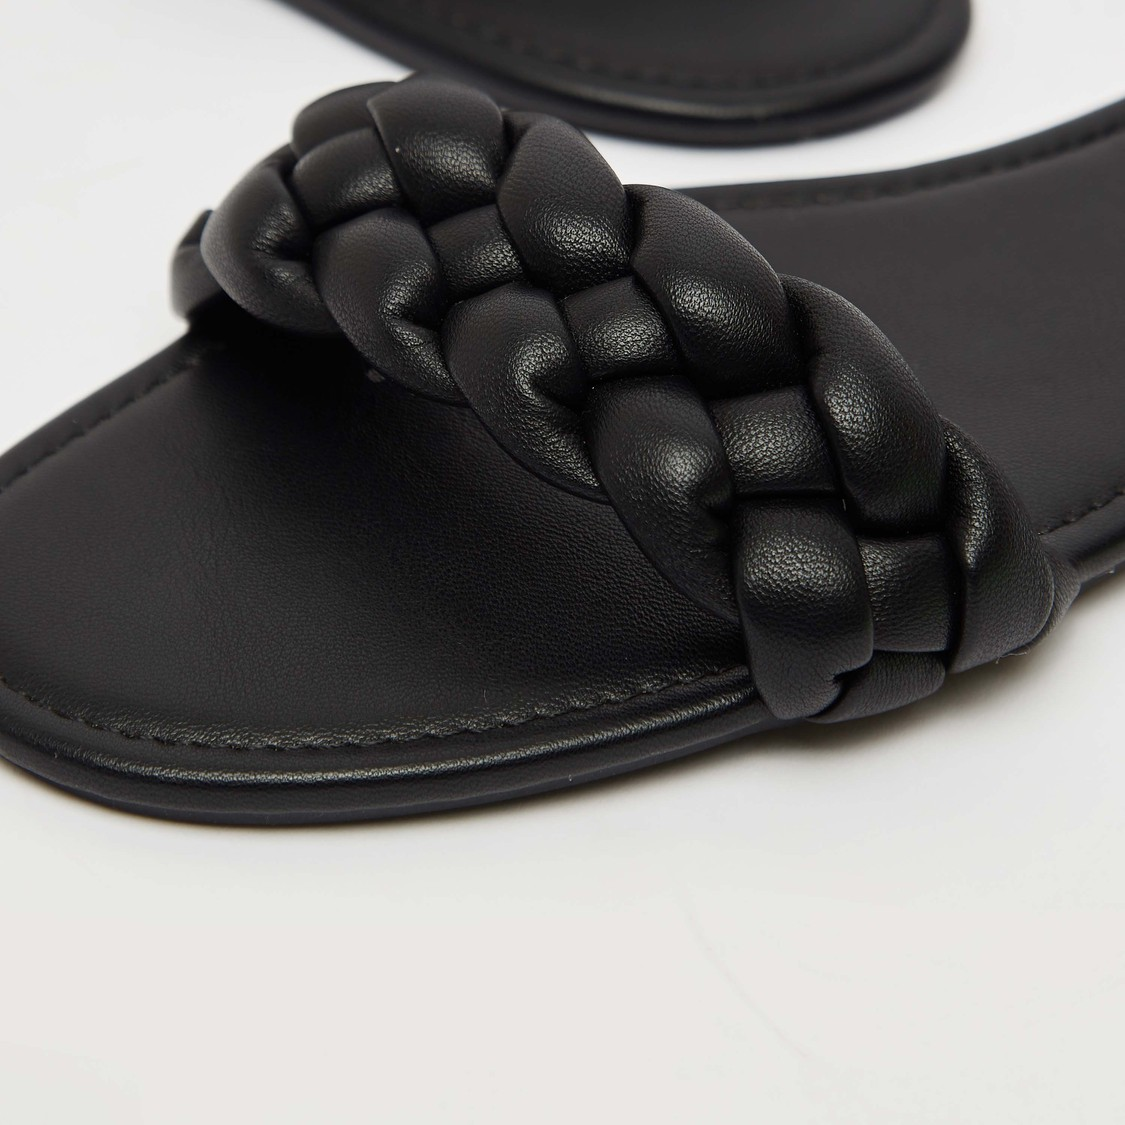 Solid Slip-On Flat Sandals with Braided Straps